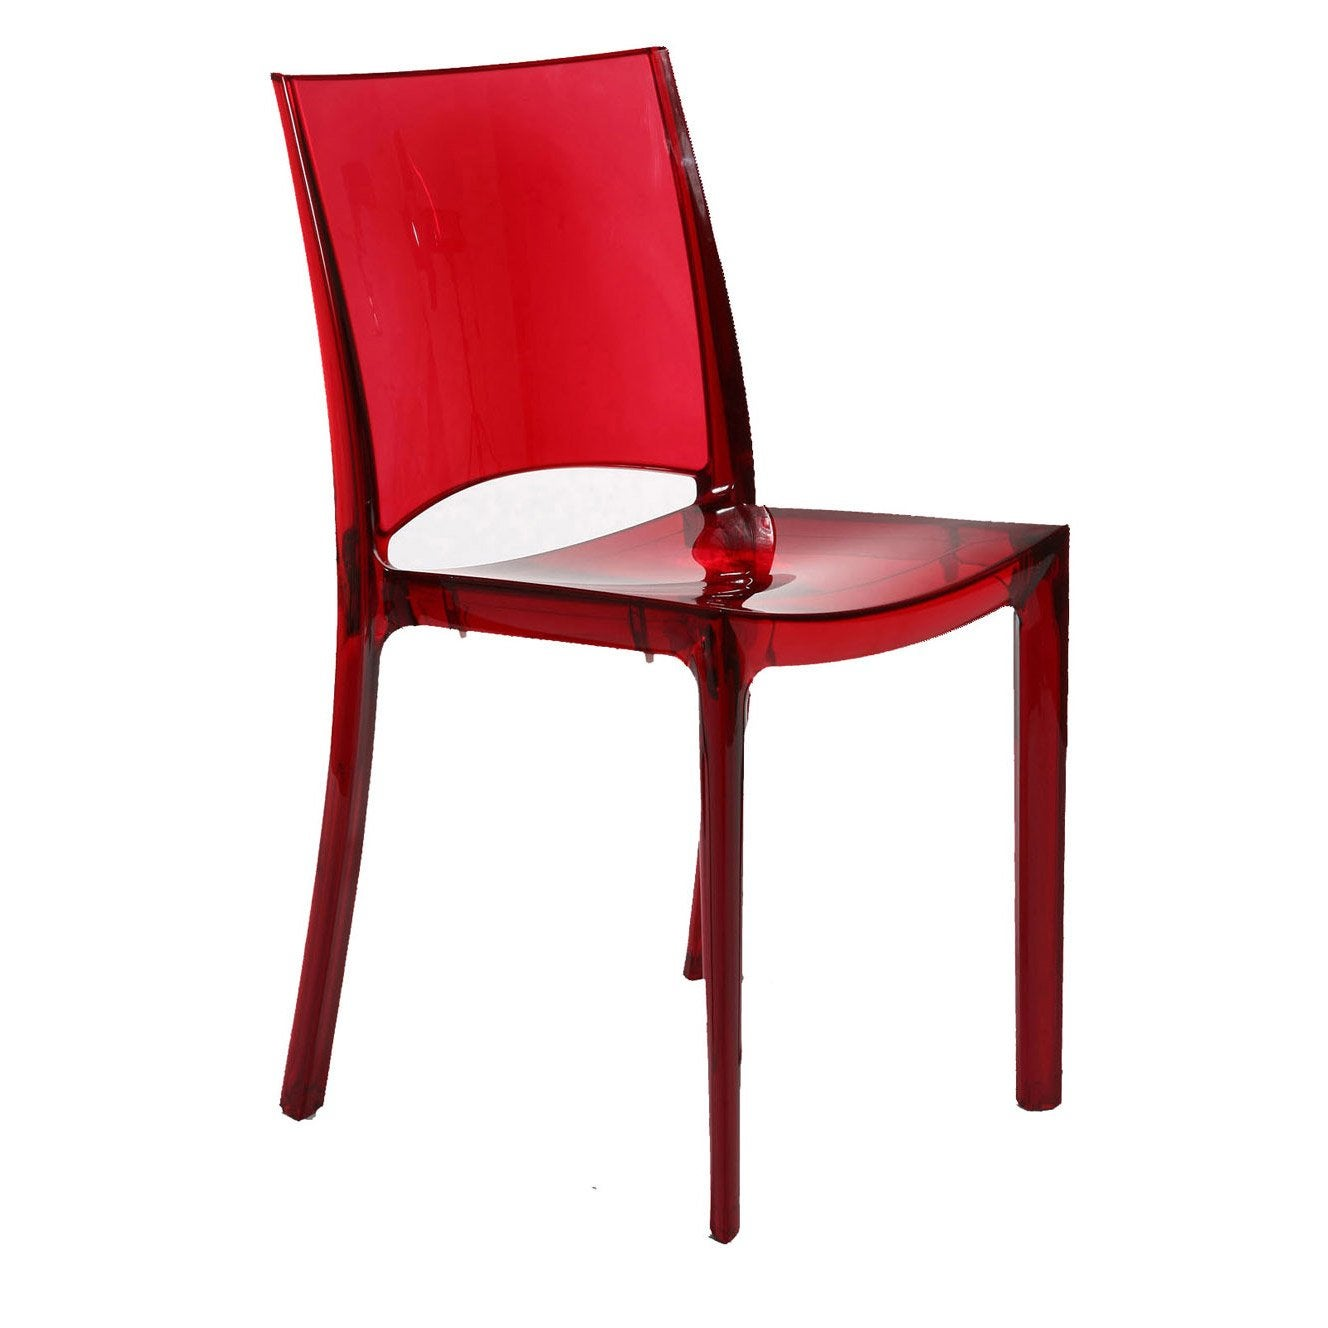 Chaise de jardin en polycarbonate paris lux rouge leroy for Chaise rouge